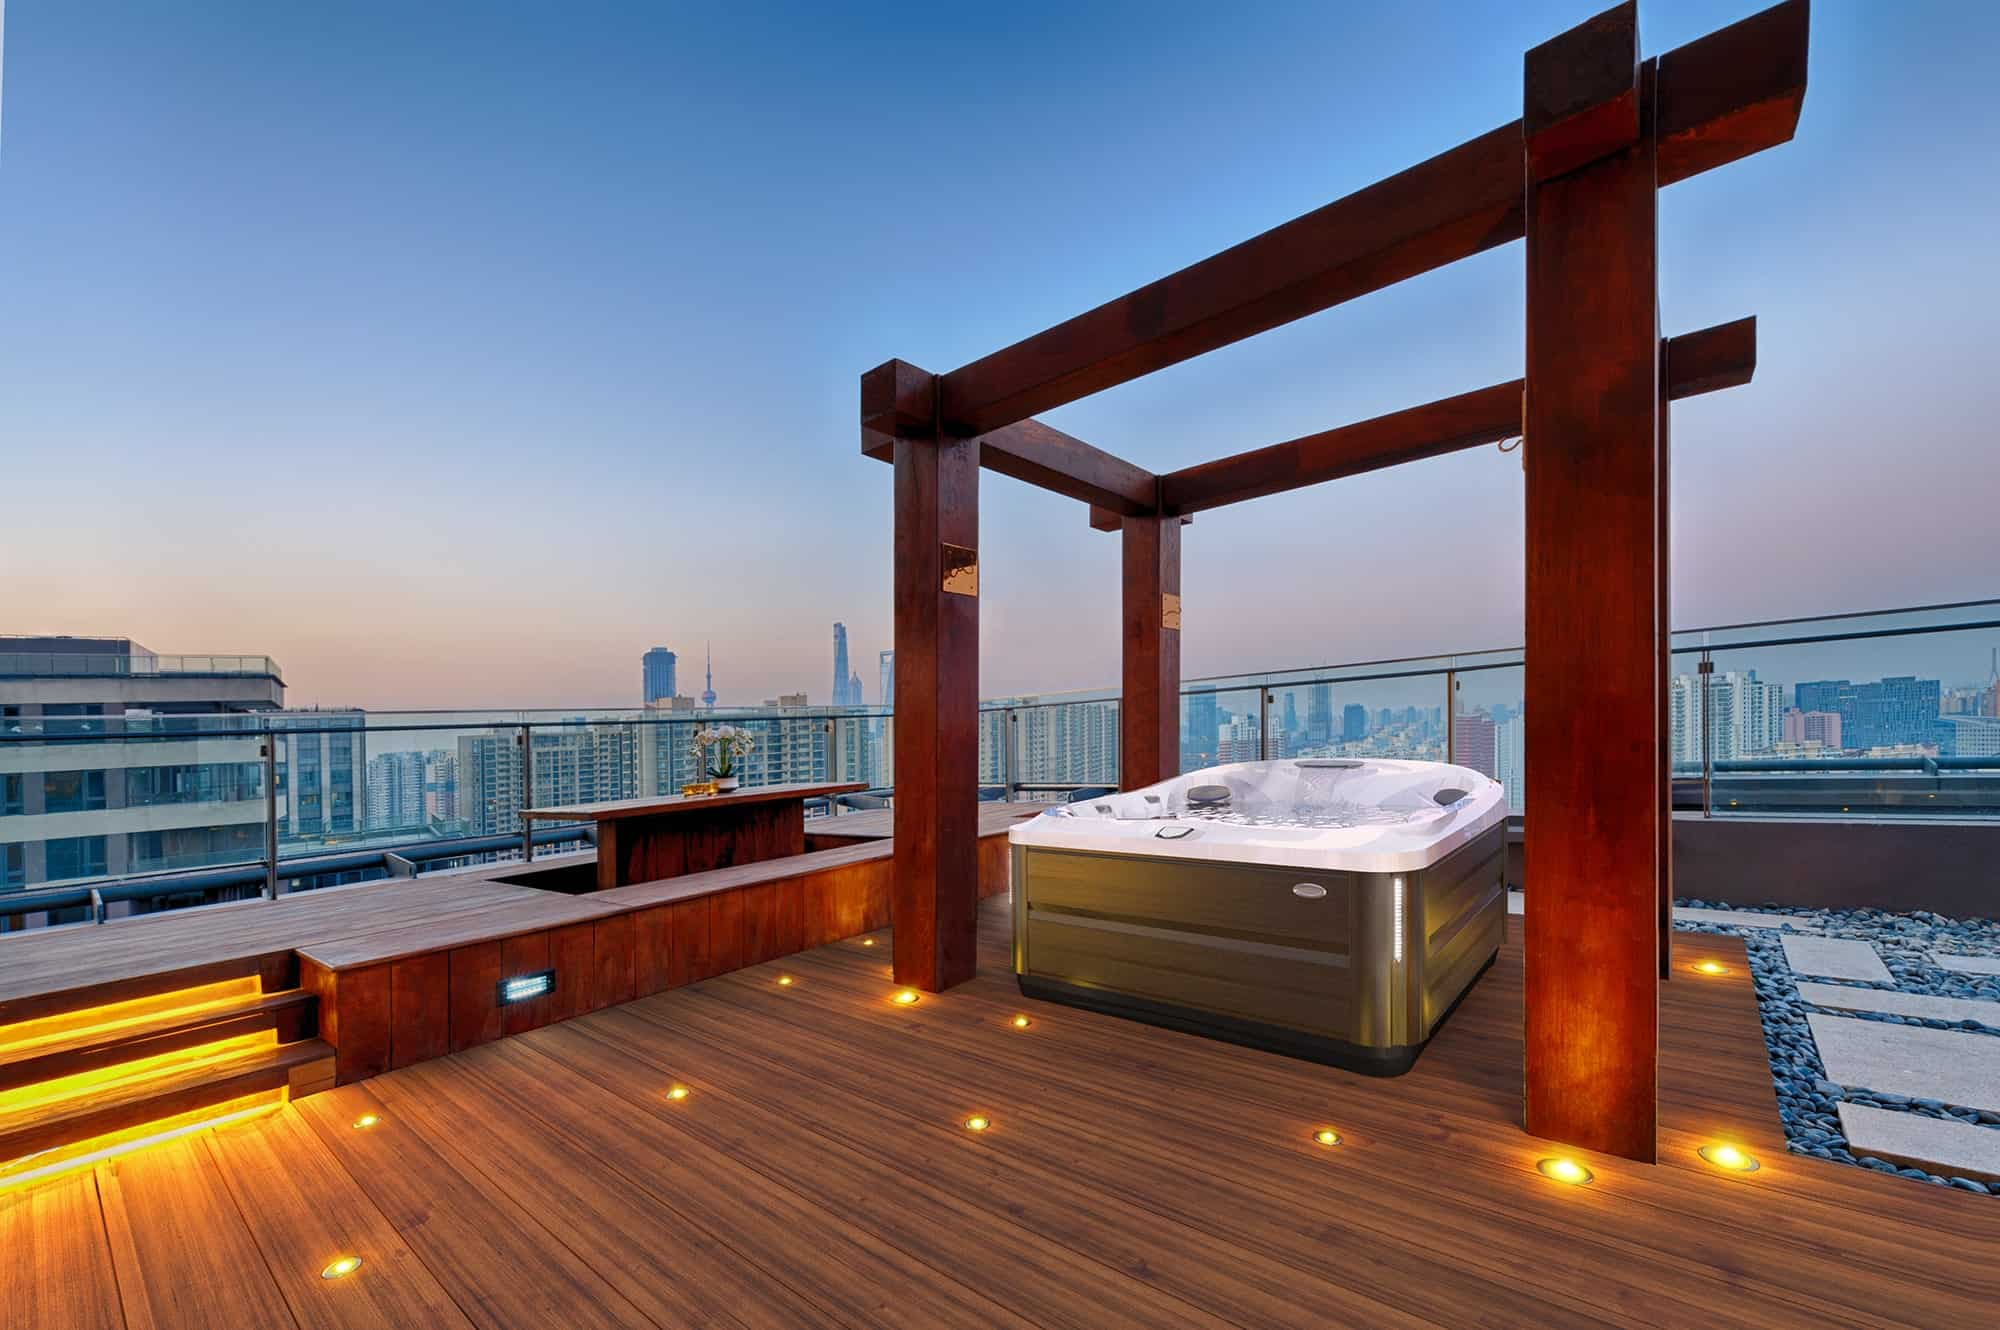 J-445 Jacuzzi Hot Tub installation with city overview